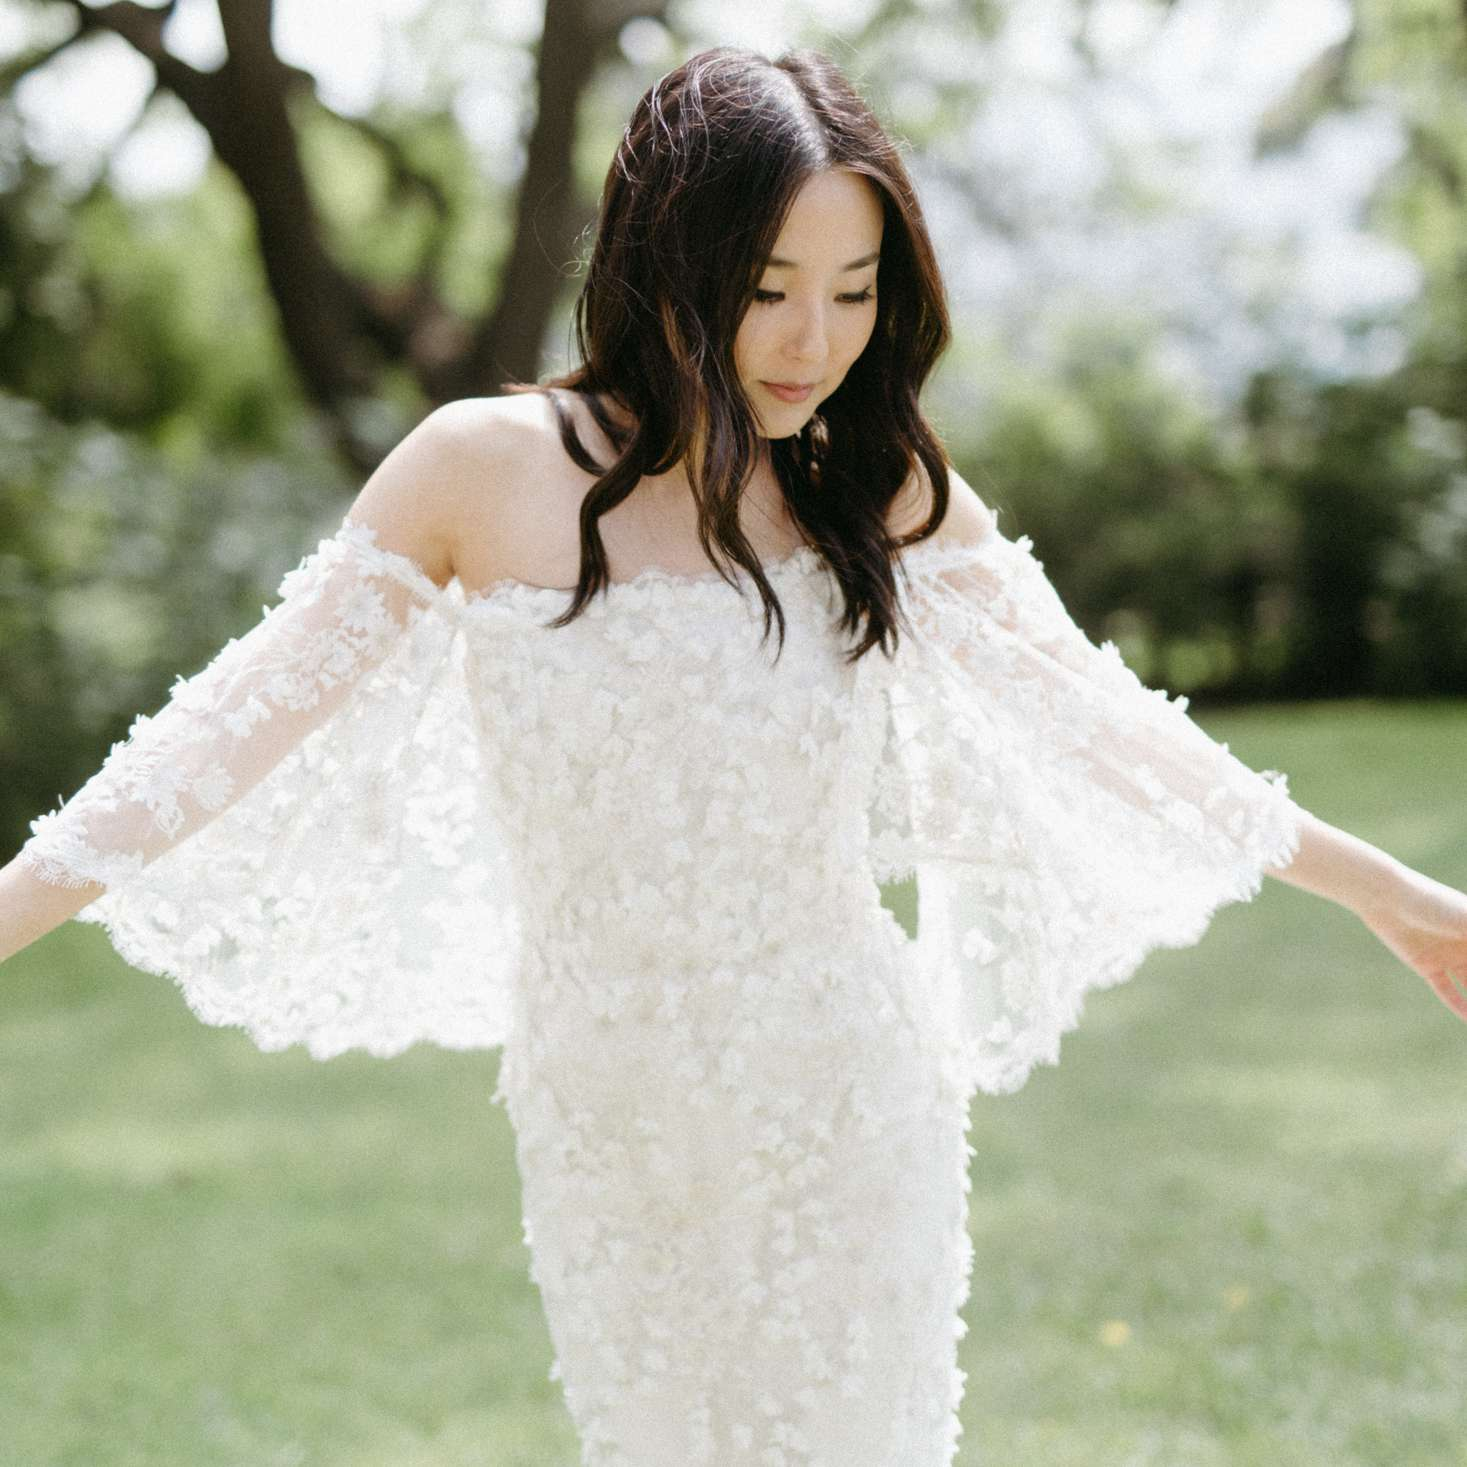 Bride twirling in wedding dress with flutter sleeves